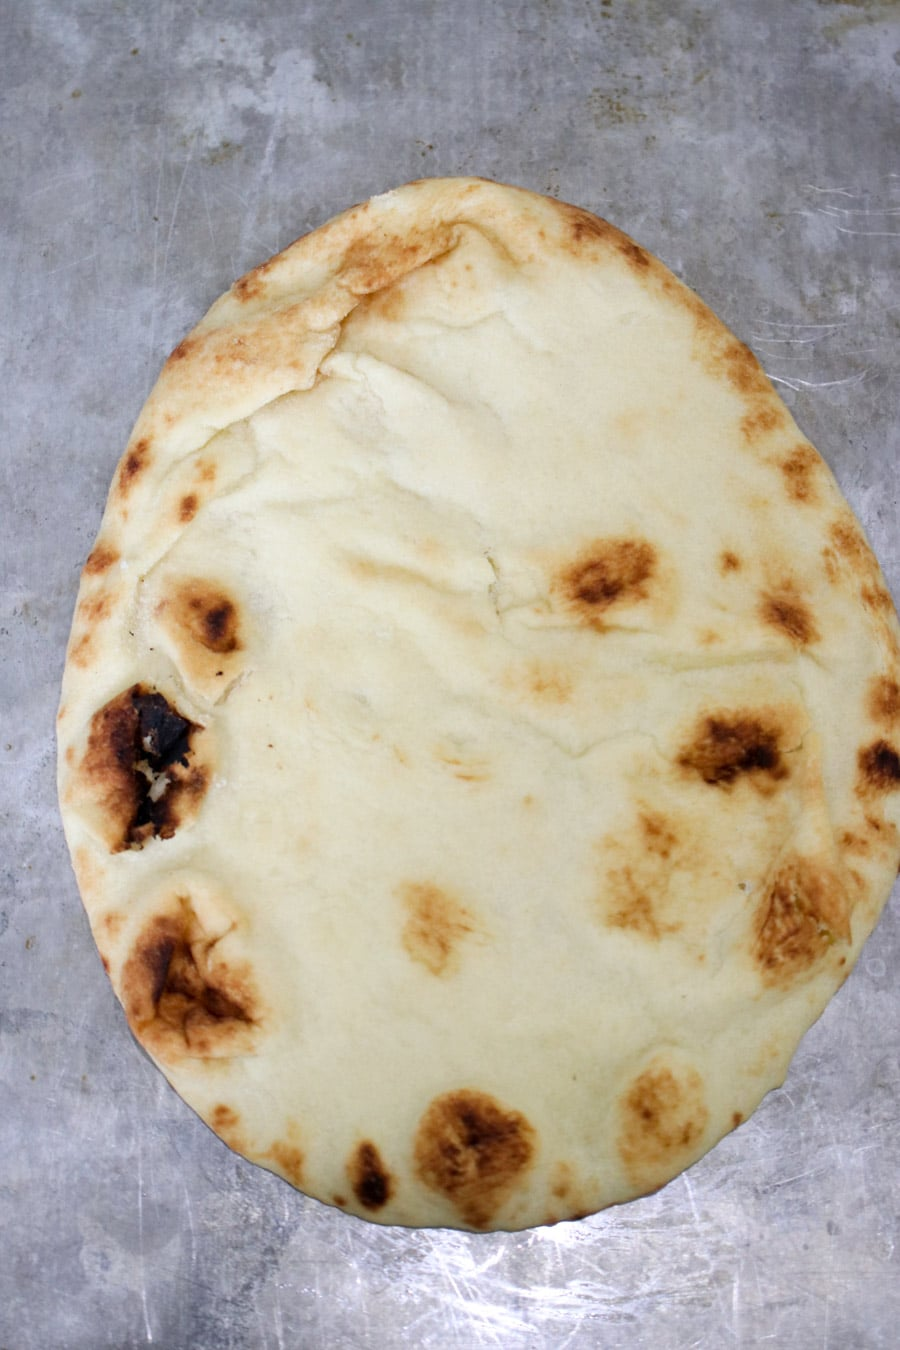 Piece of naan bread